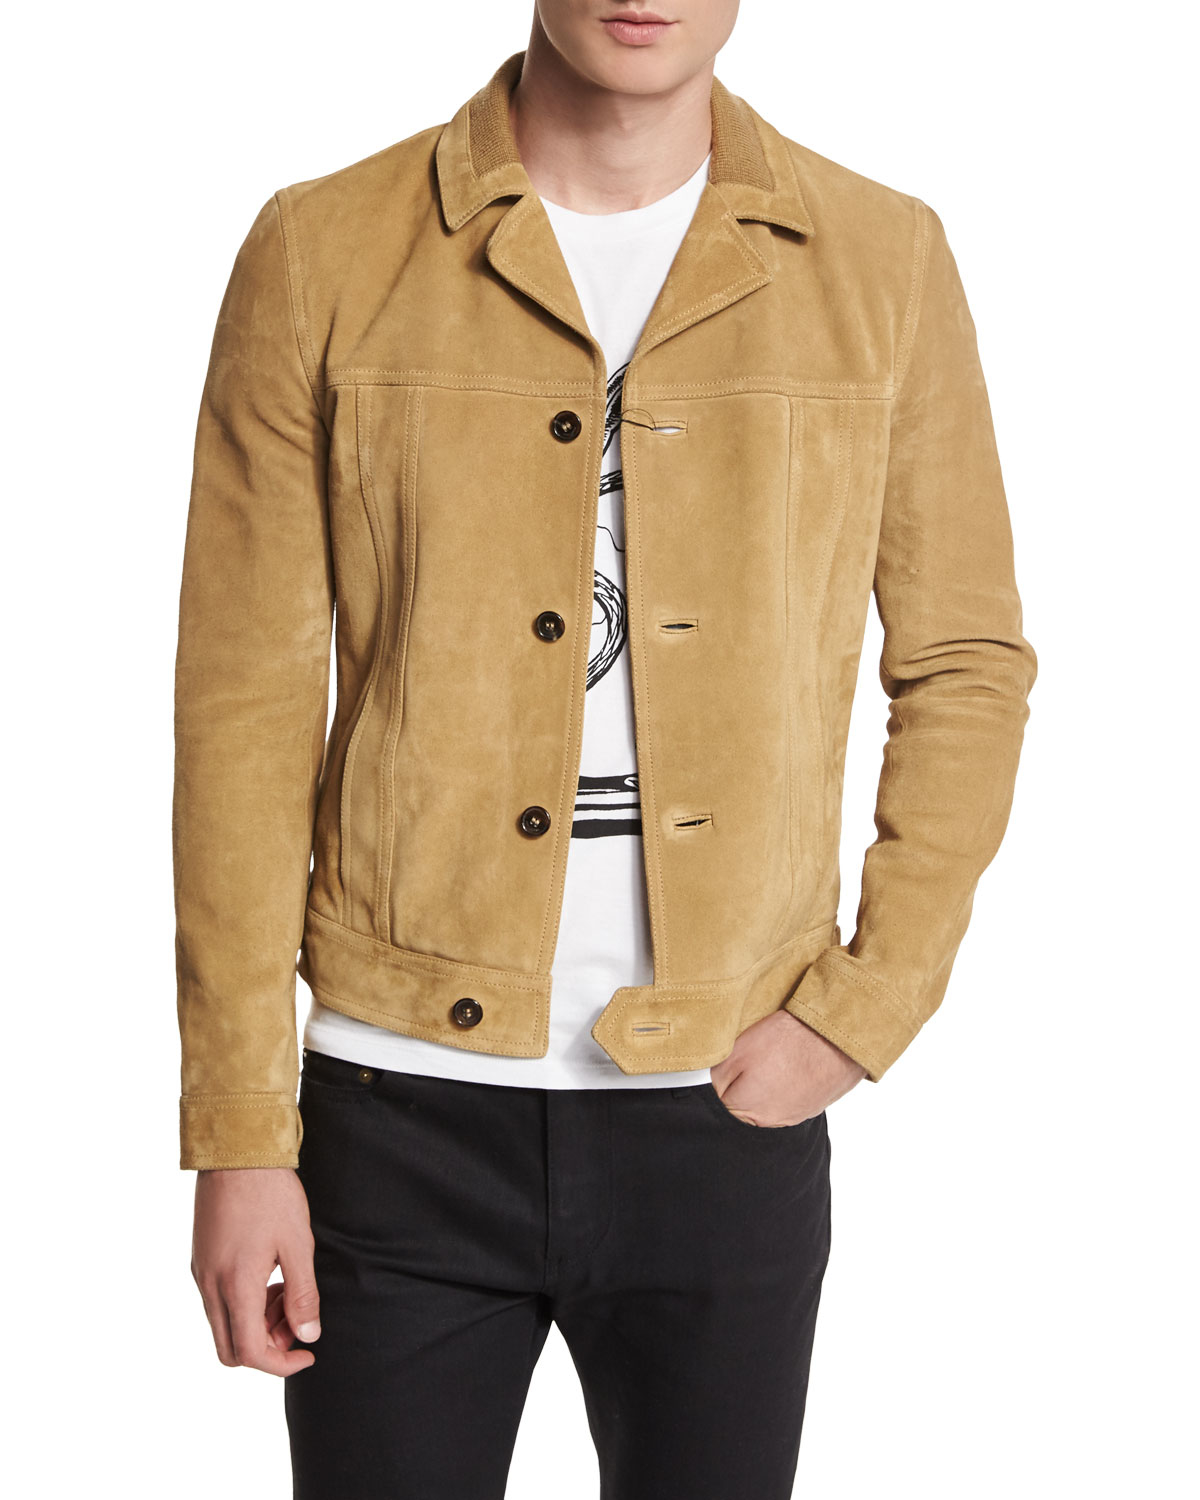 Suede Jacket Outfits For Men 20 Ways To Wear A Suede Jacket: Saint Laurent Button-down Suede Jacket In Natural